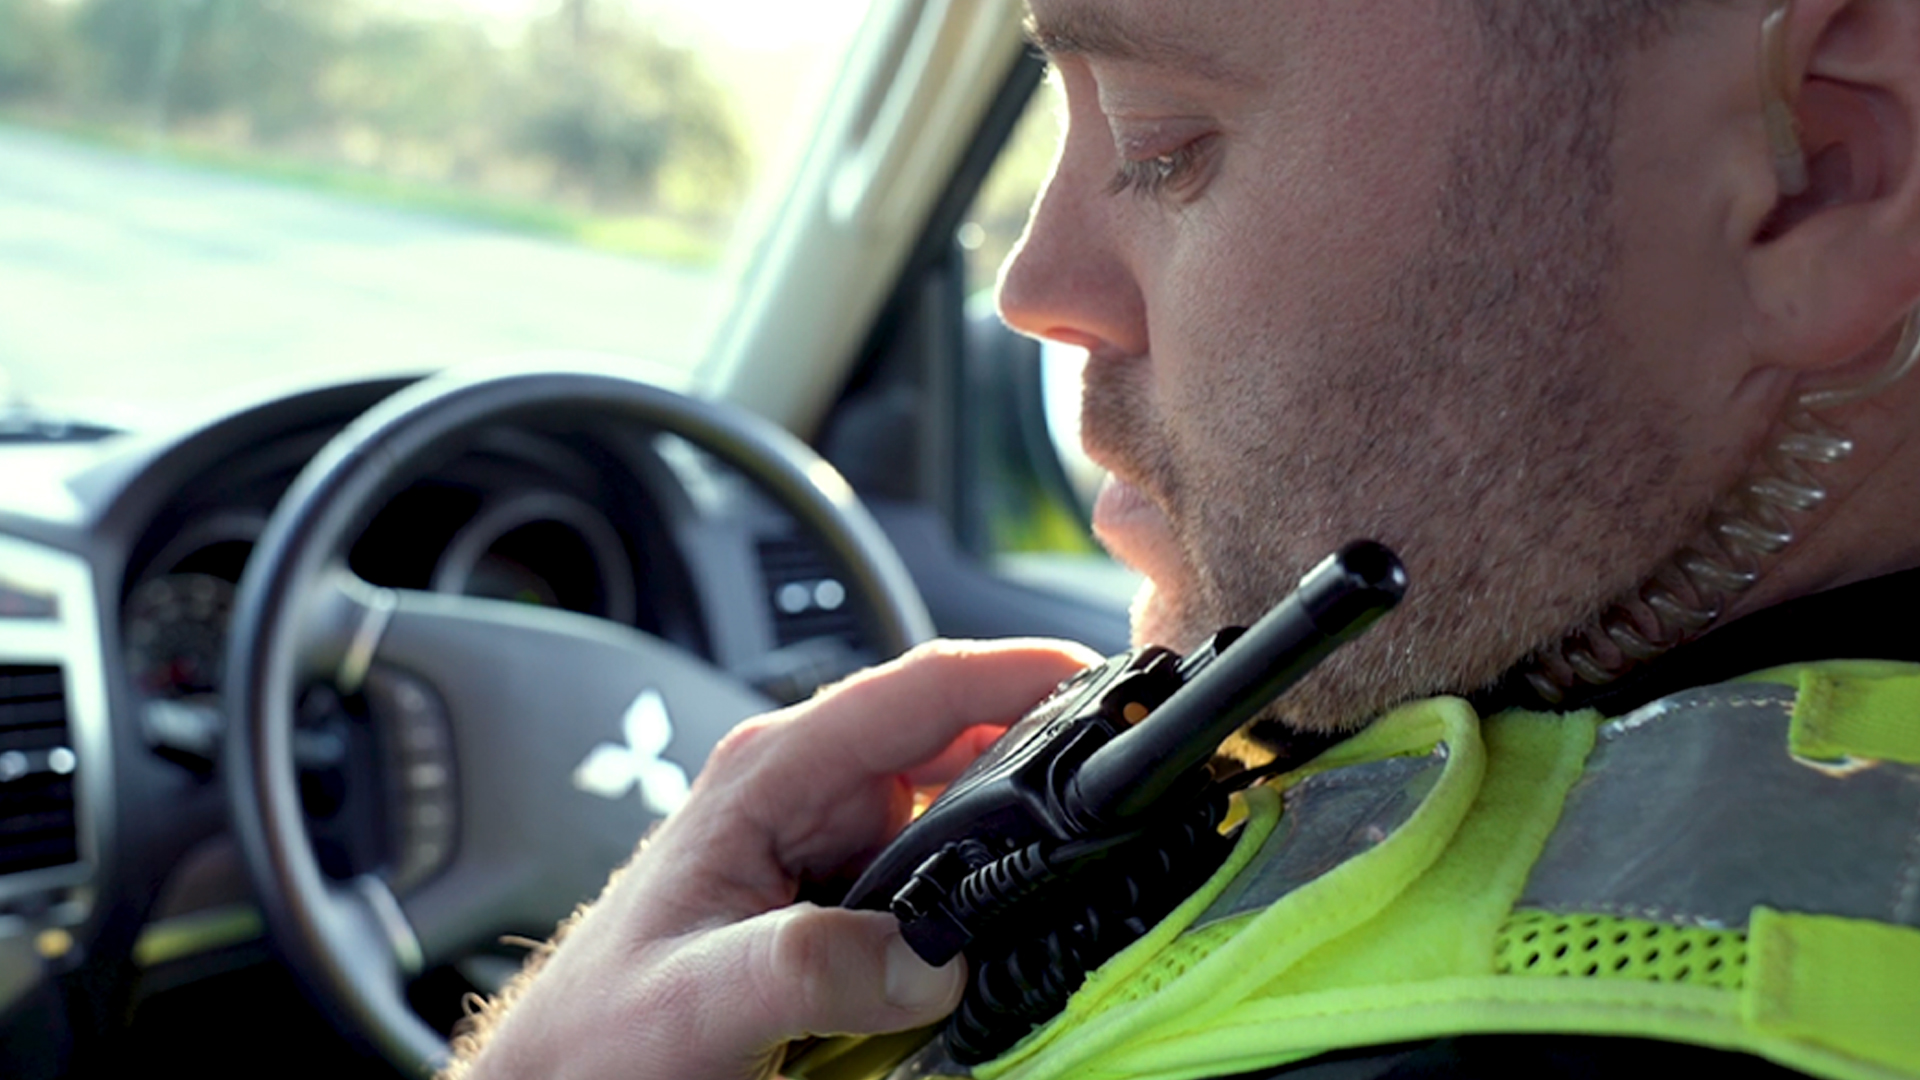 Emergency response officer in car communicating to team through walkie talkie